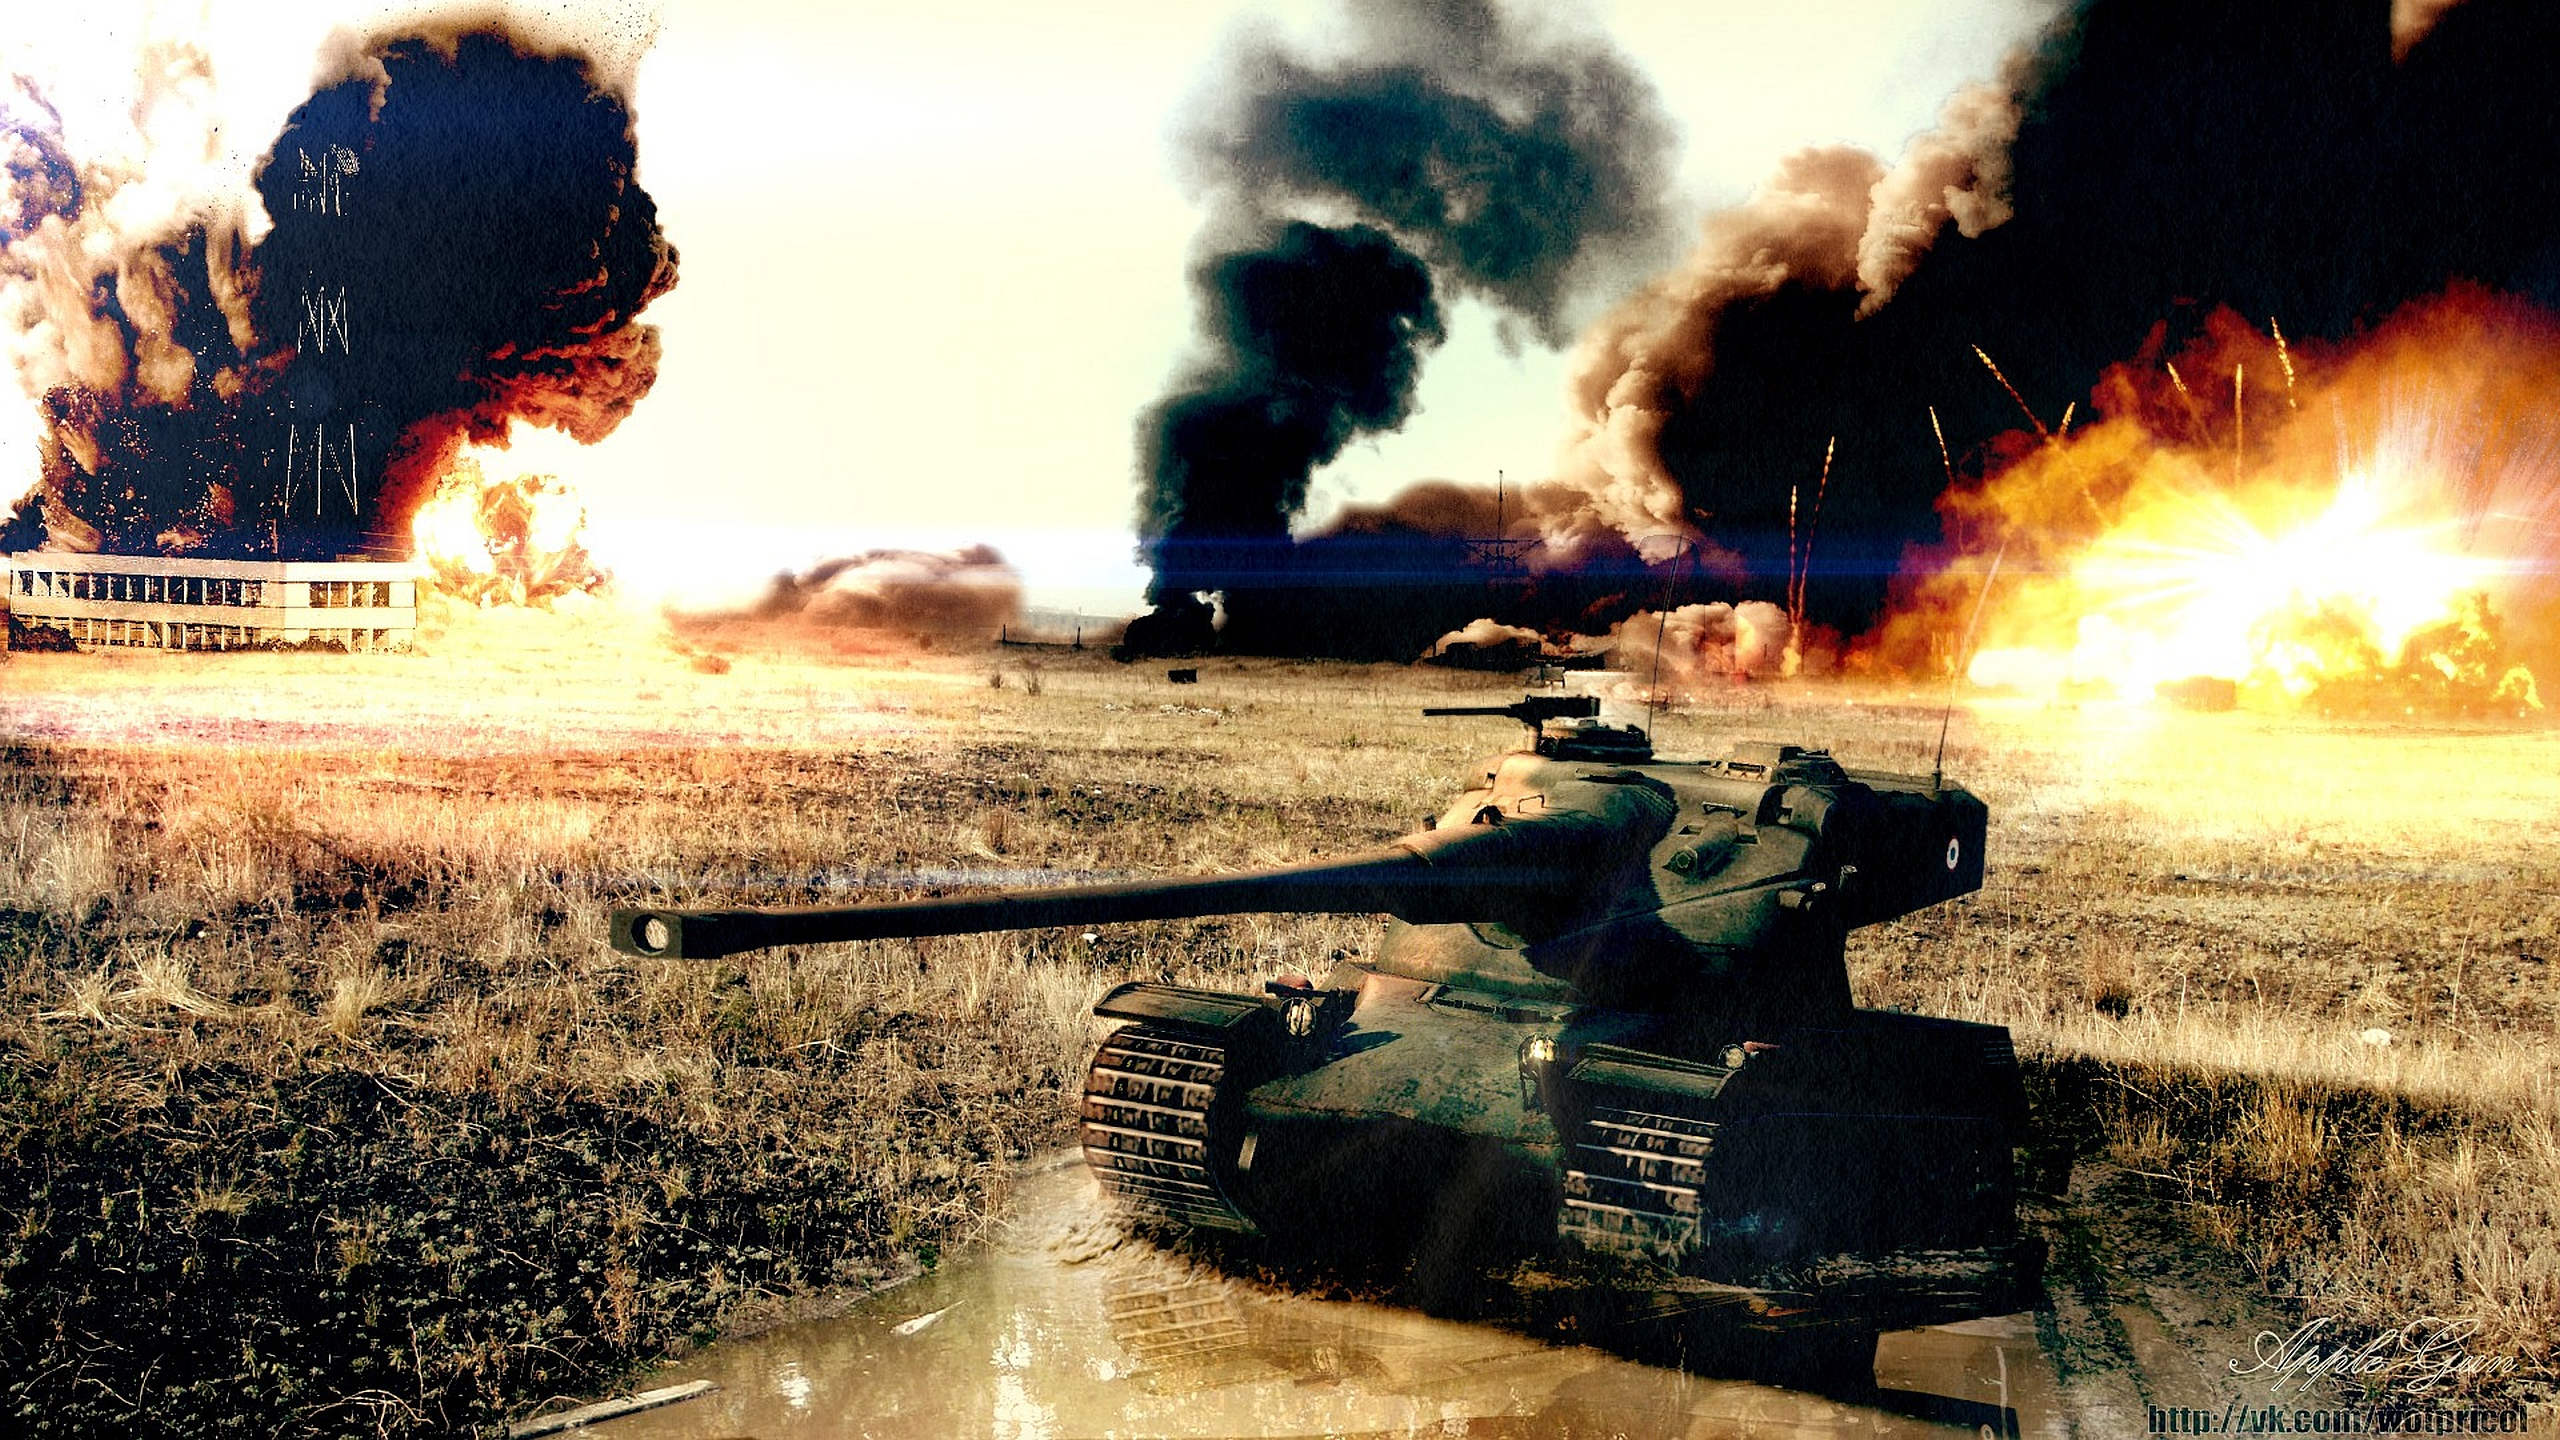 Free Download Tanks Tank Under The Rain Of Fire Wallpapers And Images Wallpapers 2560x1440 For Your Desktop Mobile Tablet Explore 67 Tank Man Wallpaper Fish Desktop Wallpaper World Of